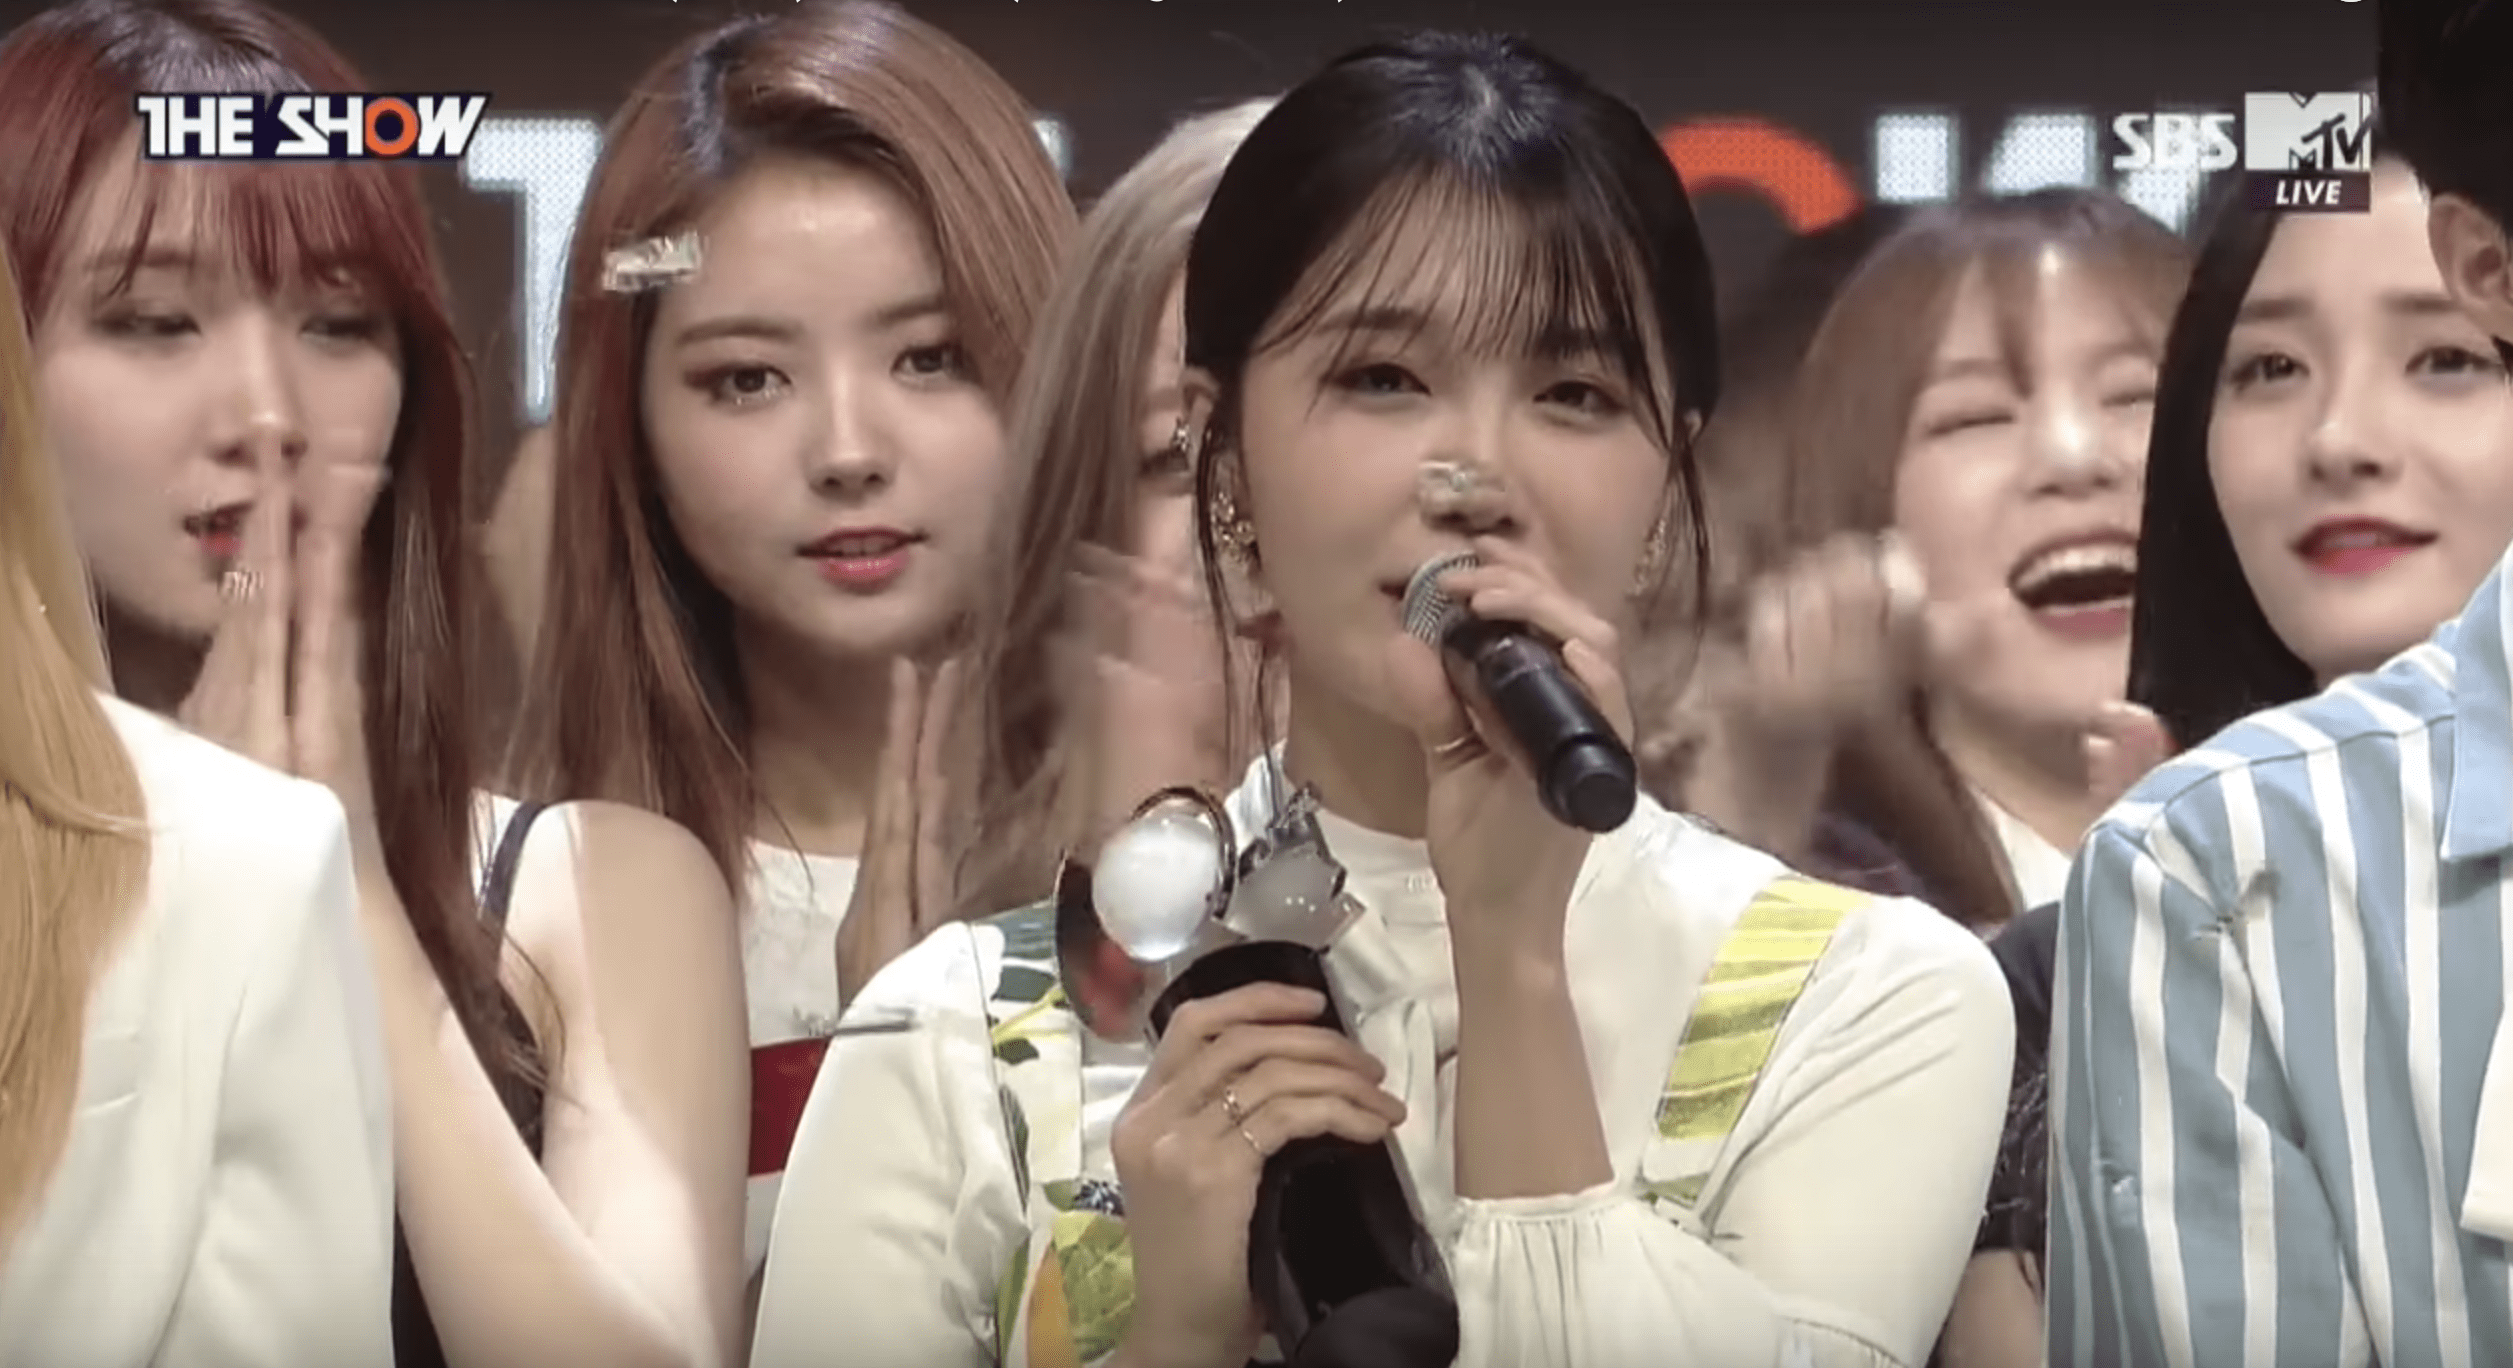 Watch: Jung Eun Ji Takes 1st Win With The Spring On The Show, Performances By Gong Minzy, EXID, Teen Top, And More